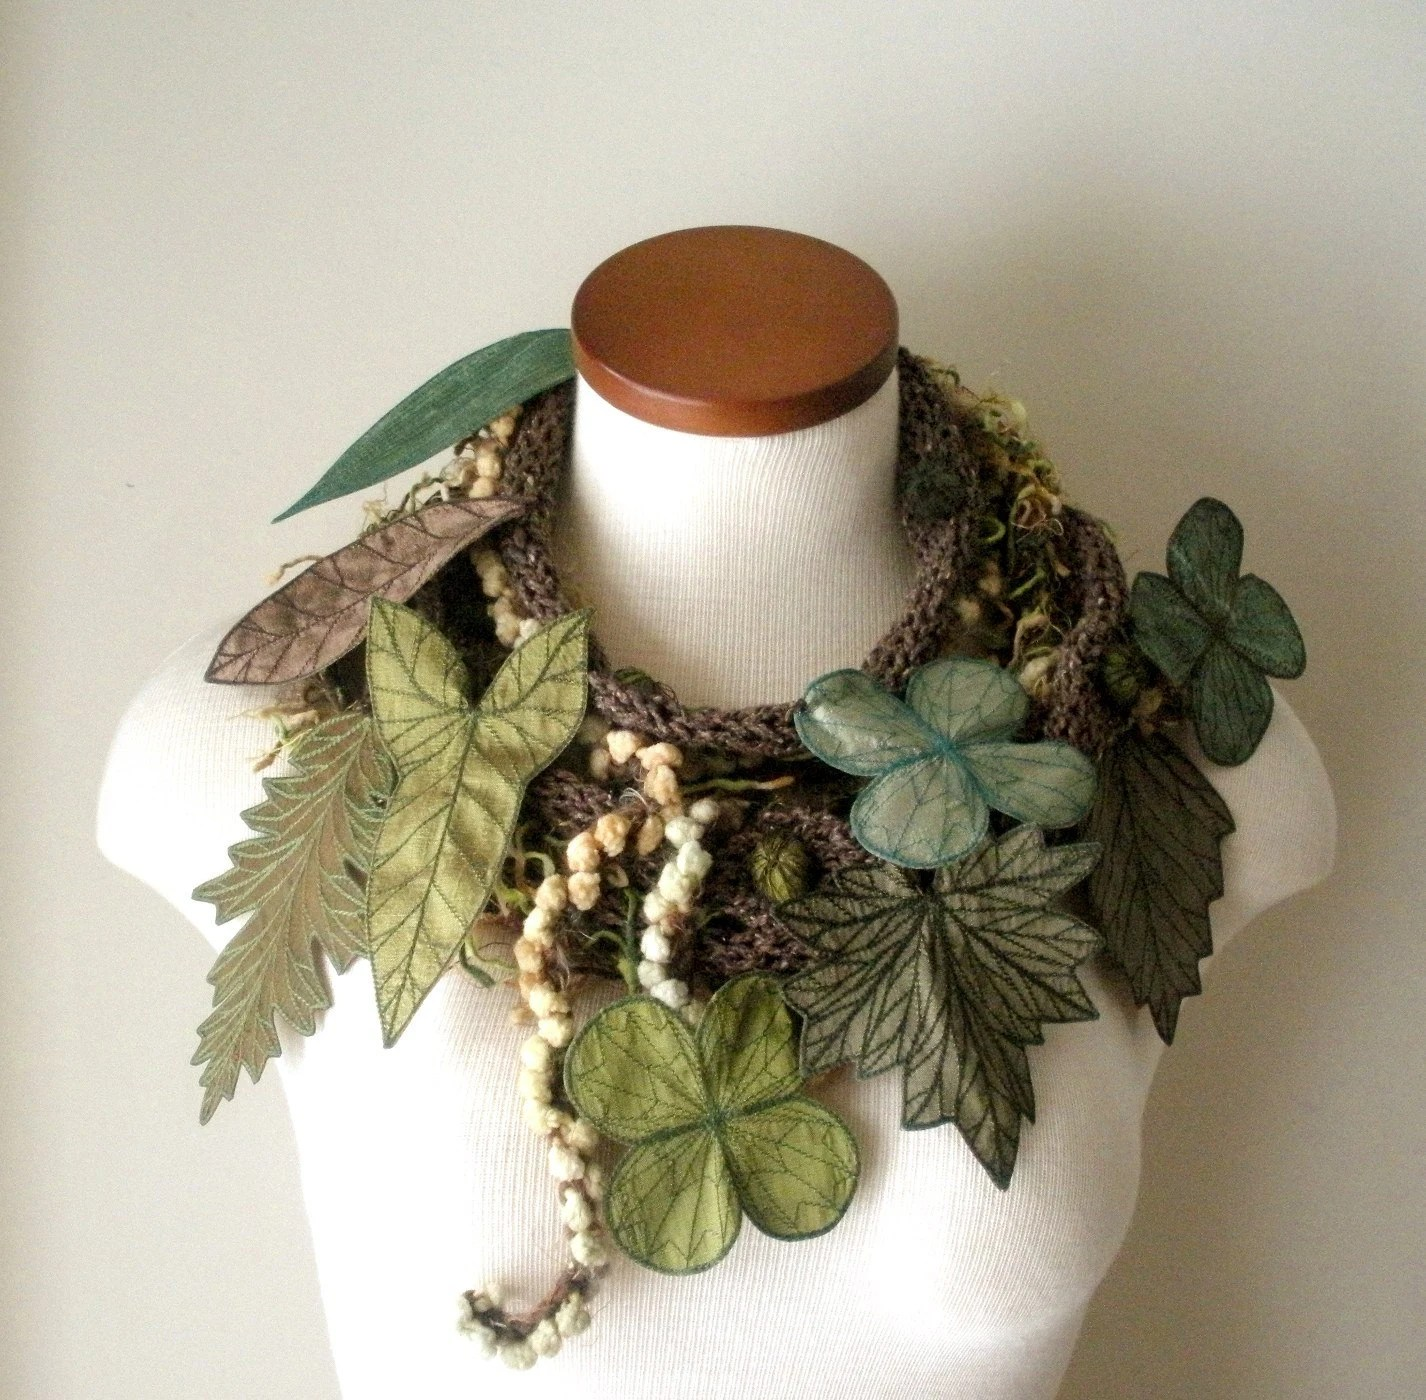 Long and Leafy Scarf with Embroidered Leaves- Tweedy Brown with Leaves of Sage, Olive, Jungle Green, and Bronze-Brown- Fiber Art Scarf - TheFaerieMarket